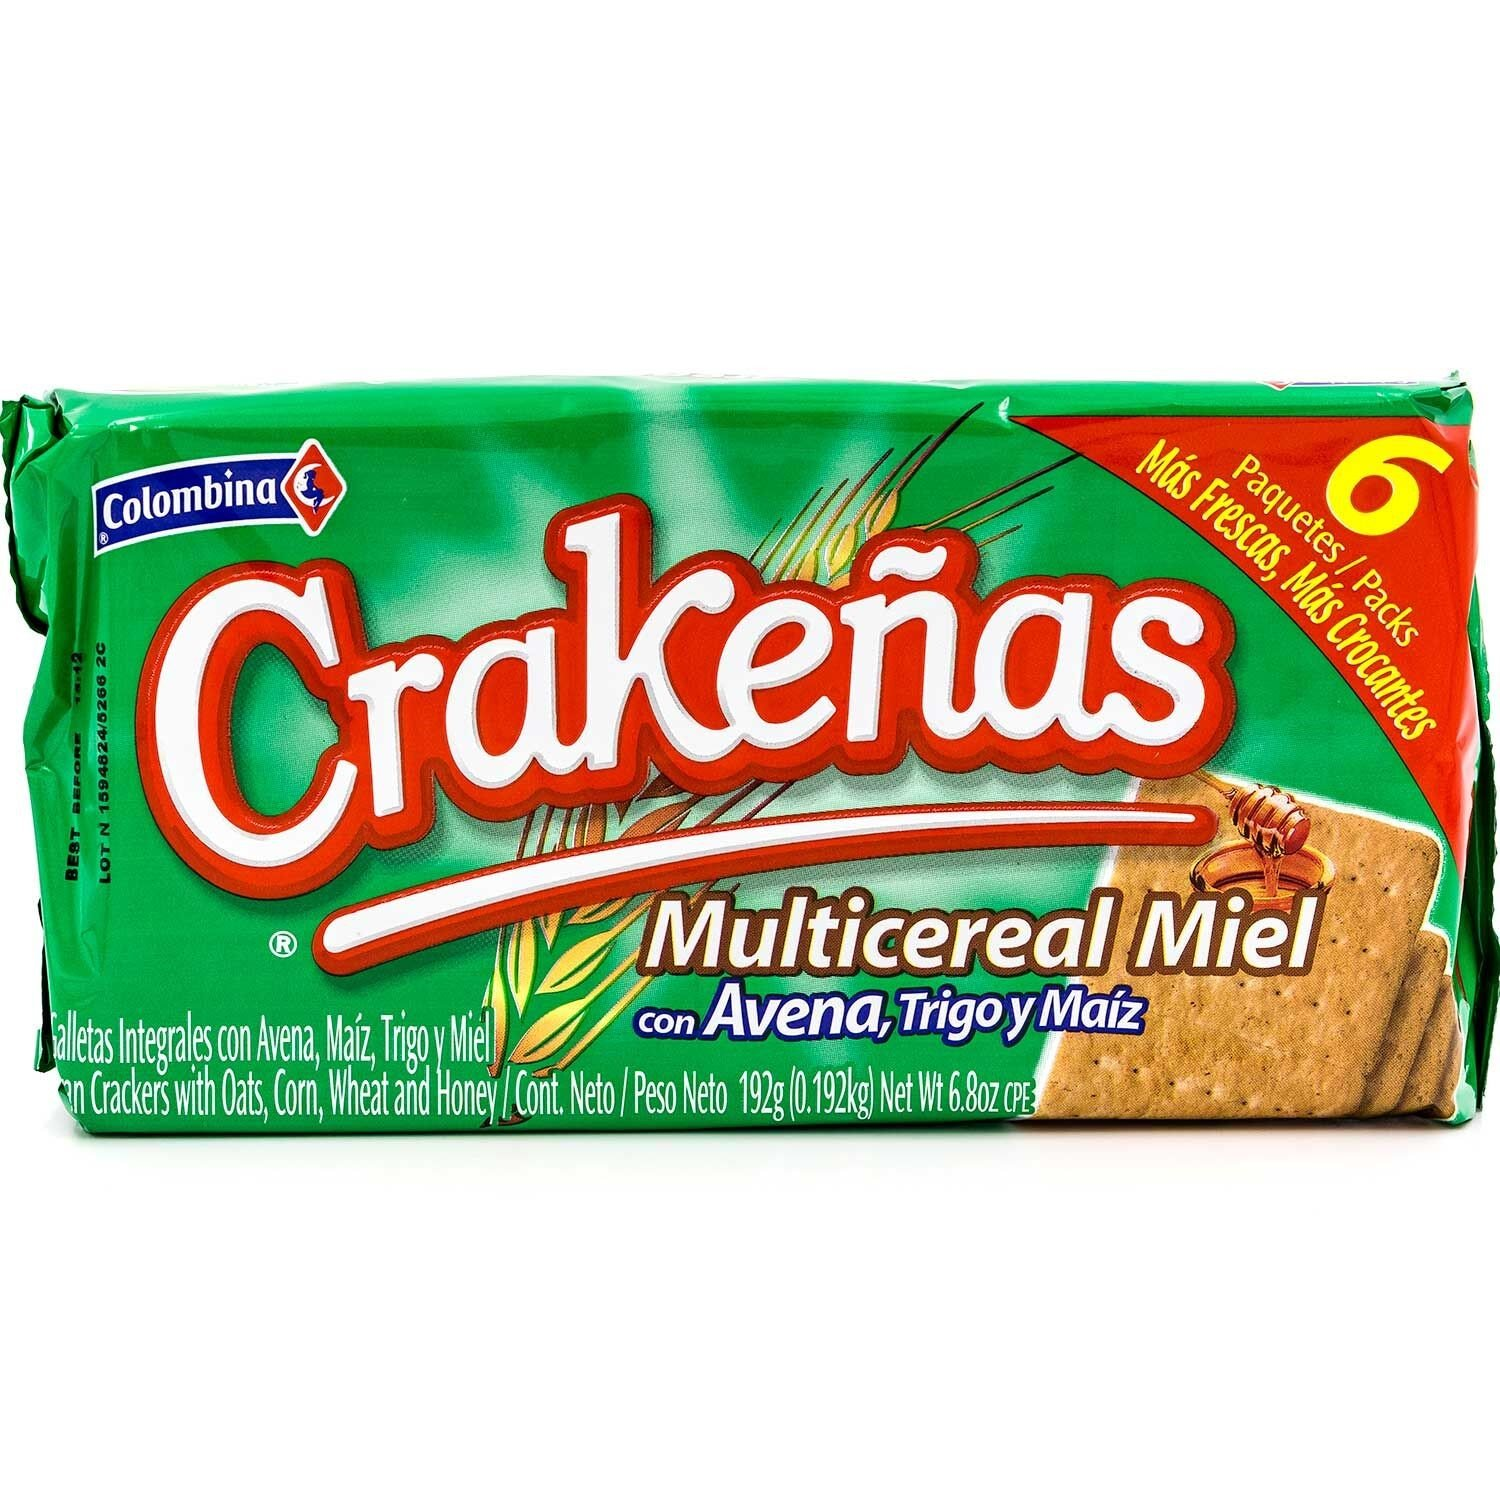 Amazon.com : Colombina Crakenas Multi Cereal Miel, 6.8 Ounce (Pack of 12) : Grocery & Gourmet Food